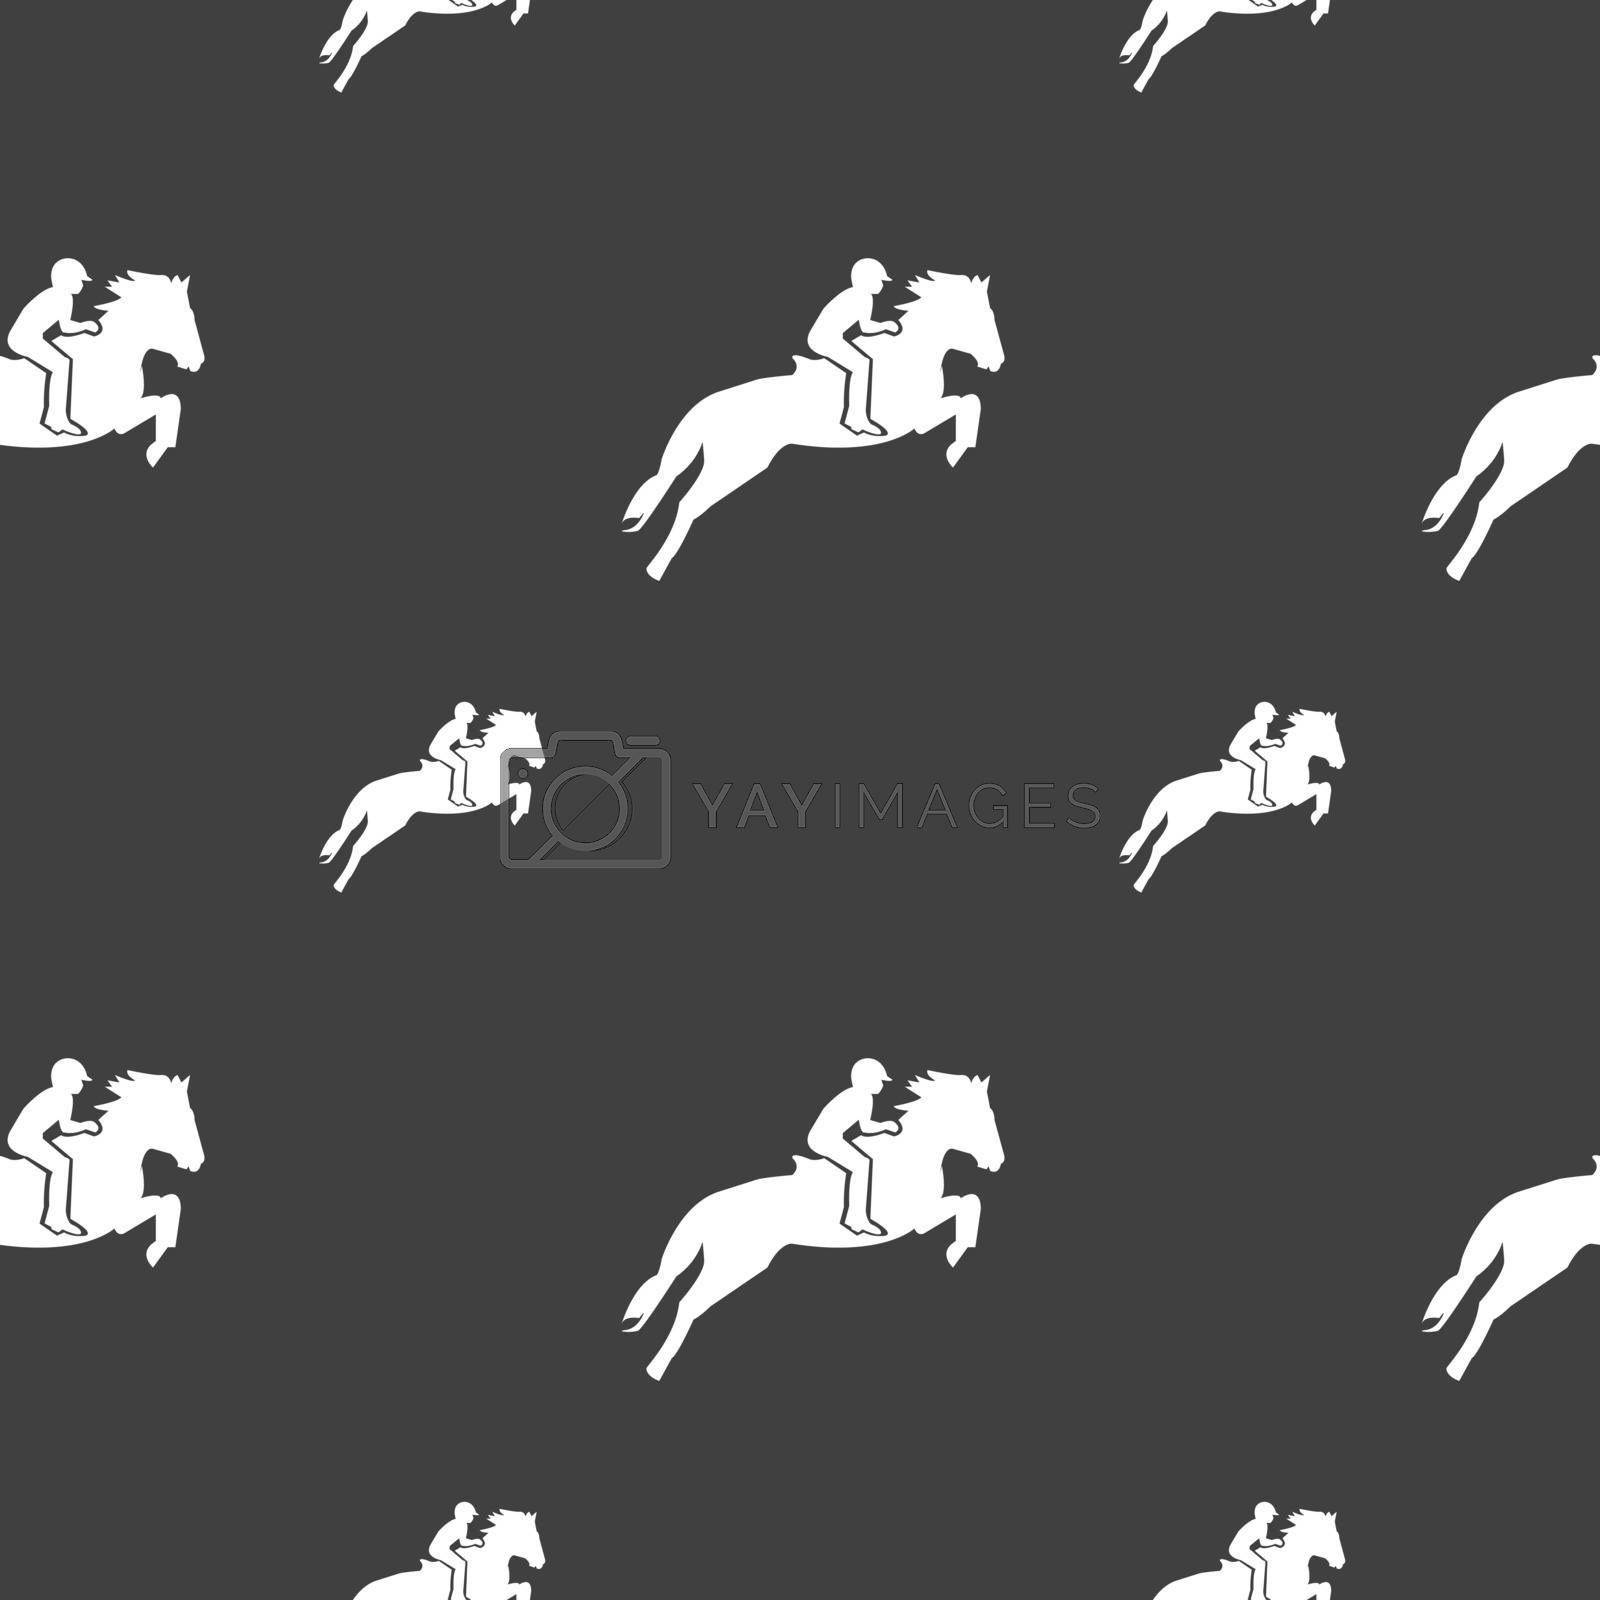 Horse Race Derby Equestrian Sport Silhouette Of Racing Horse Icon Sign Seamless Pattern On A Gray Background Vector Royalty Free Stock Image Stock Photos Royalty Free Images Vectors Footage Yayimages